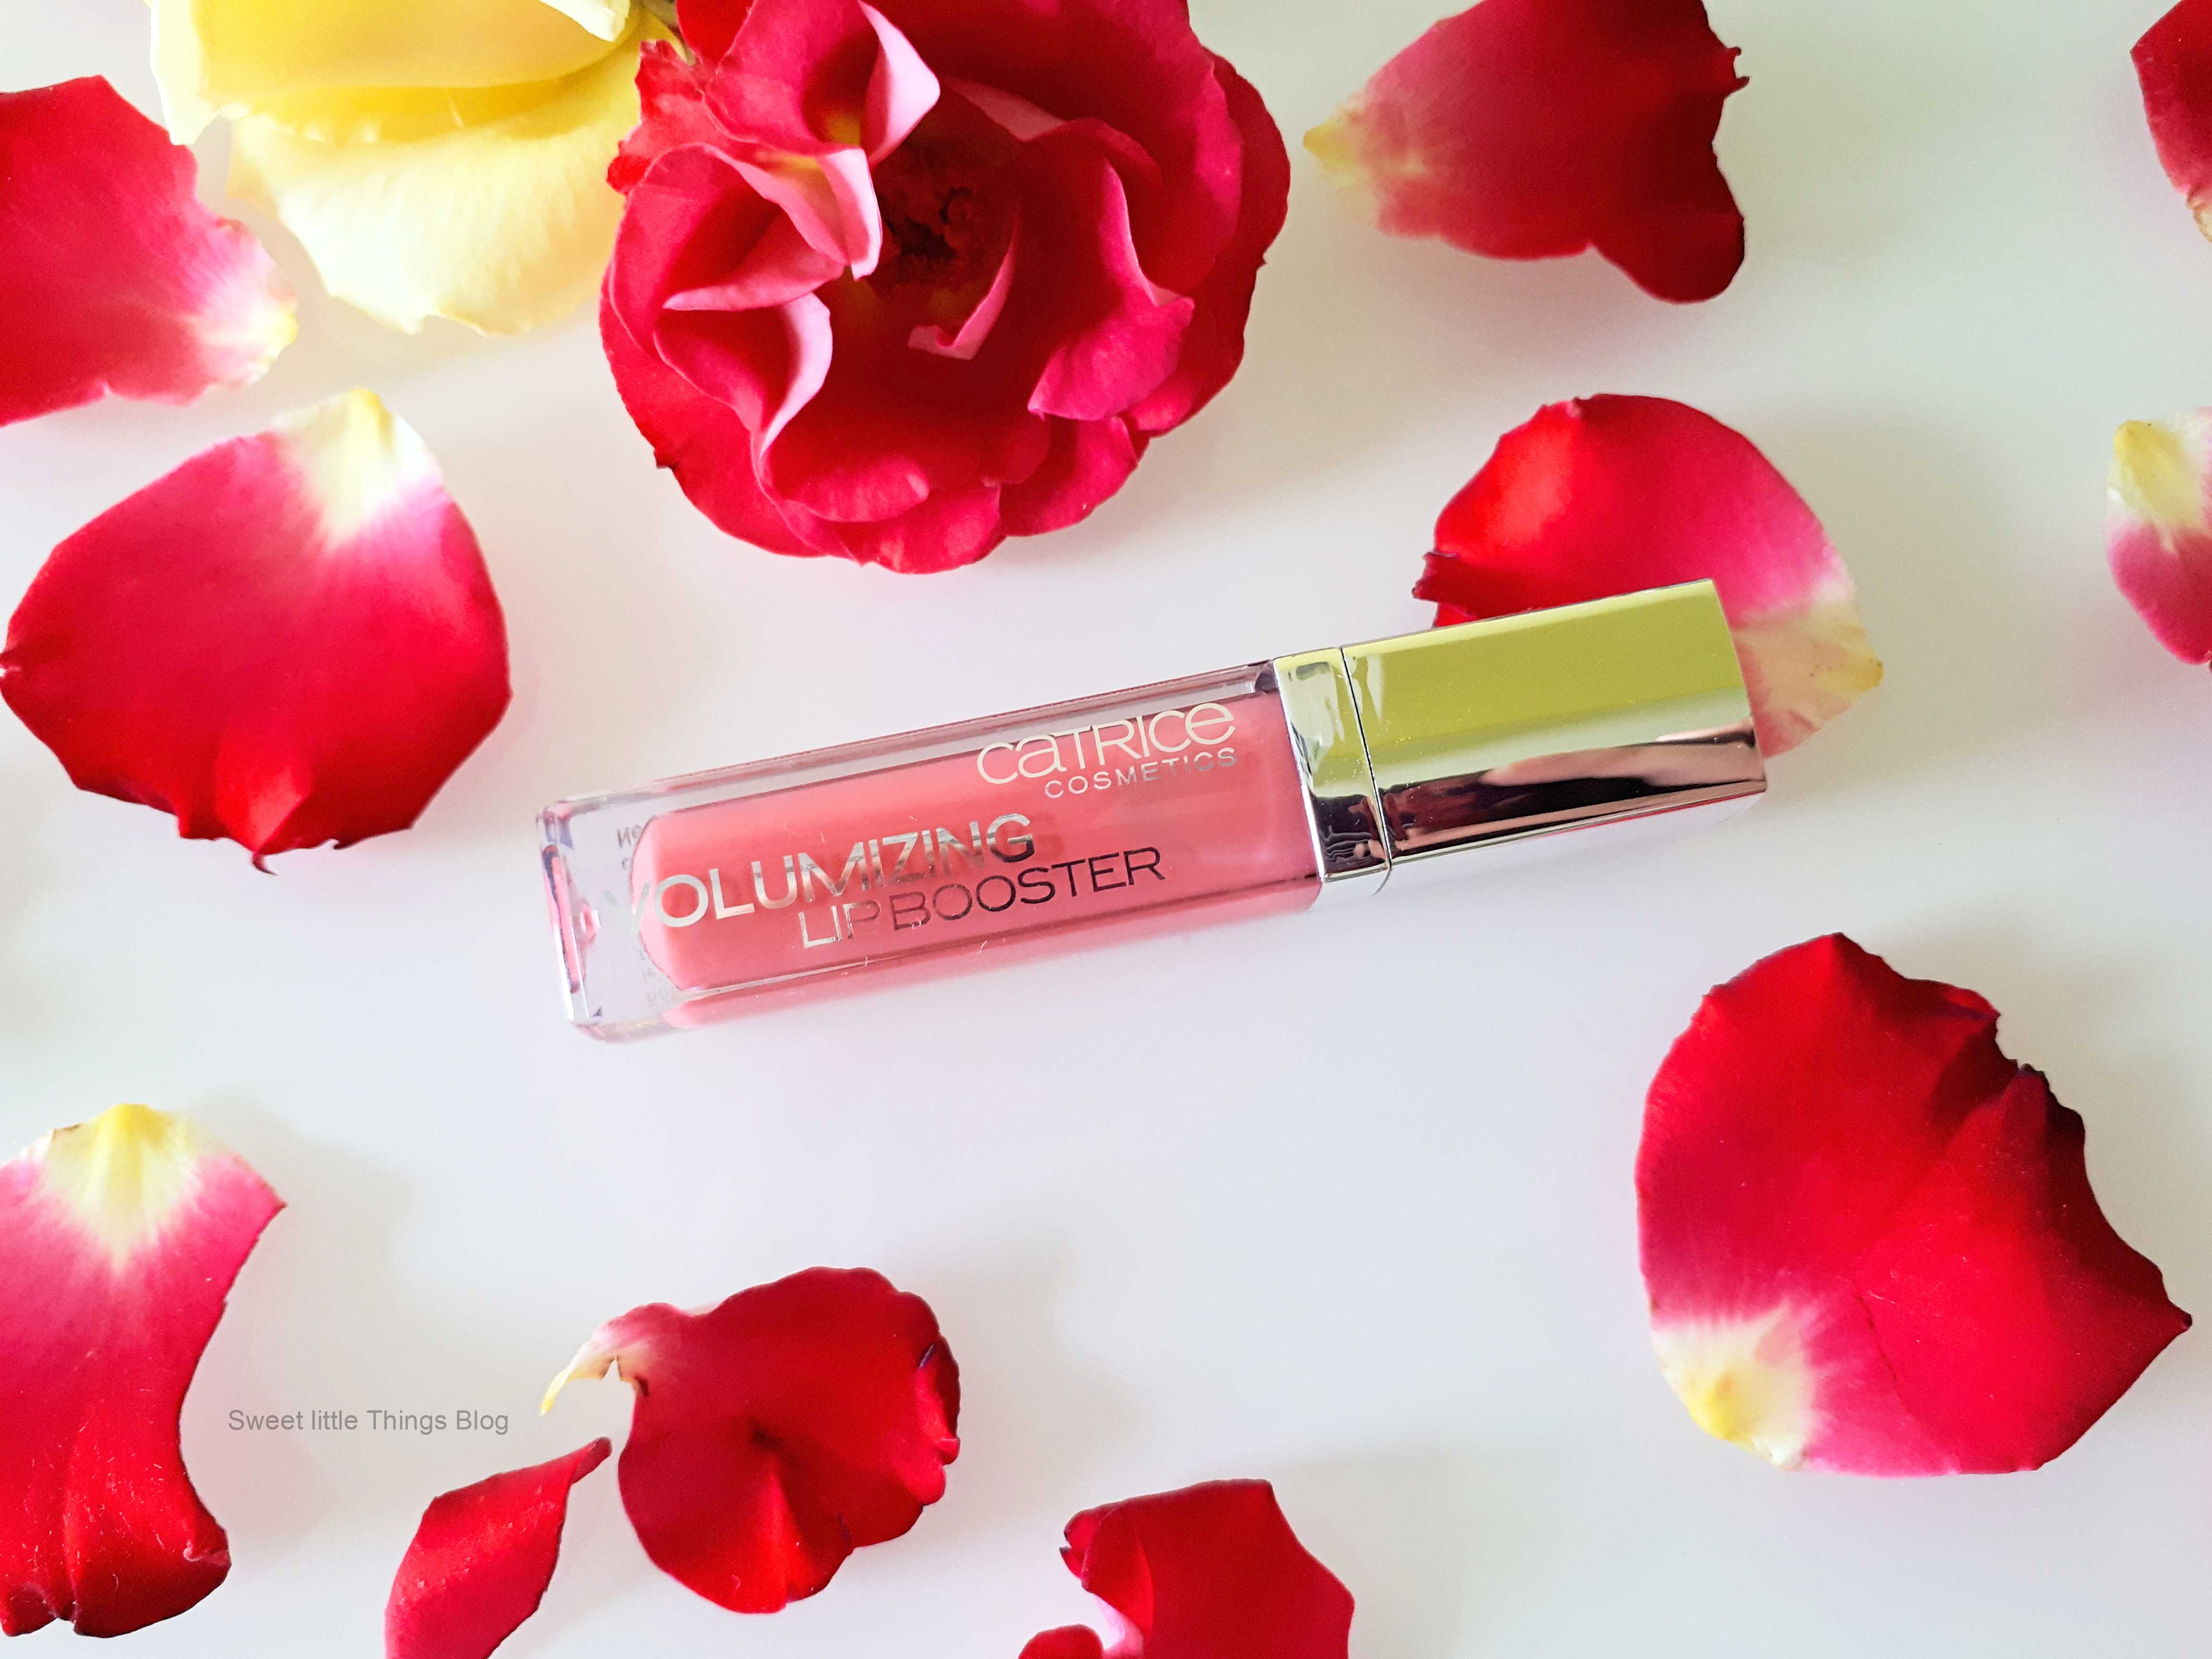 CATRICE VOLUMIZING LIP BOOSTER, 030 PINK UP THE VOLUME- REVIEW + SWATCHES